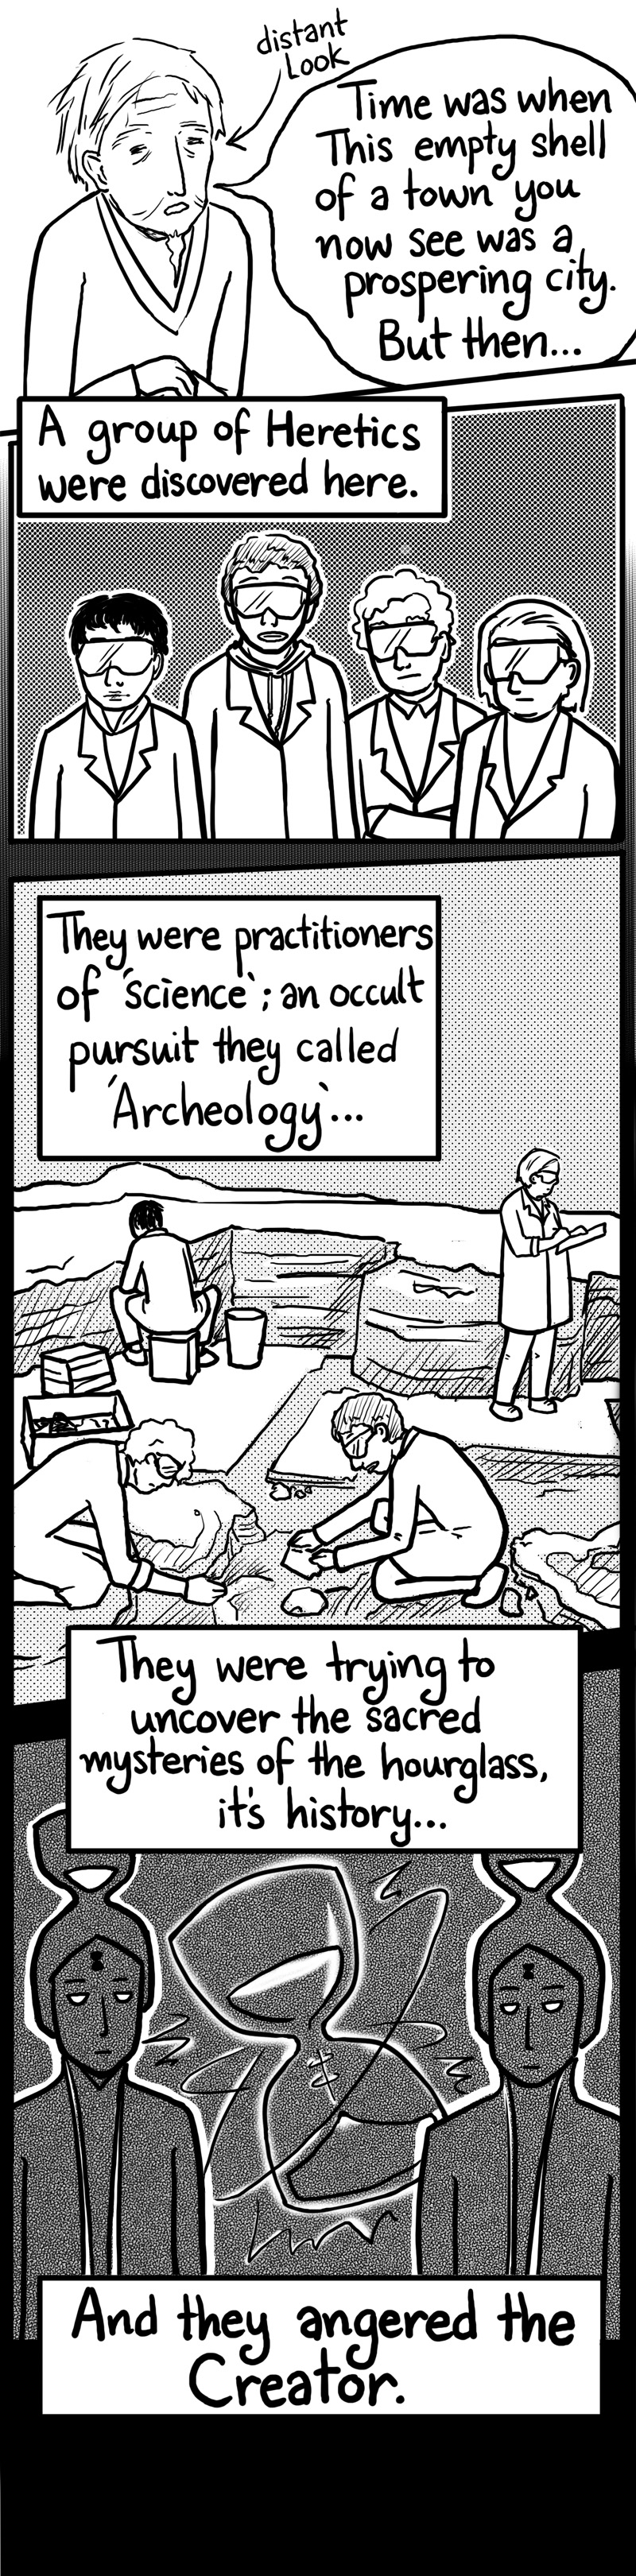 comic-2012-01-12-Archeologists.jpg